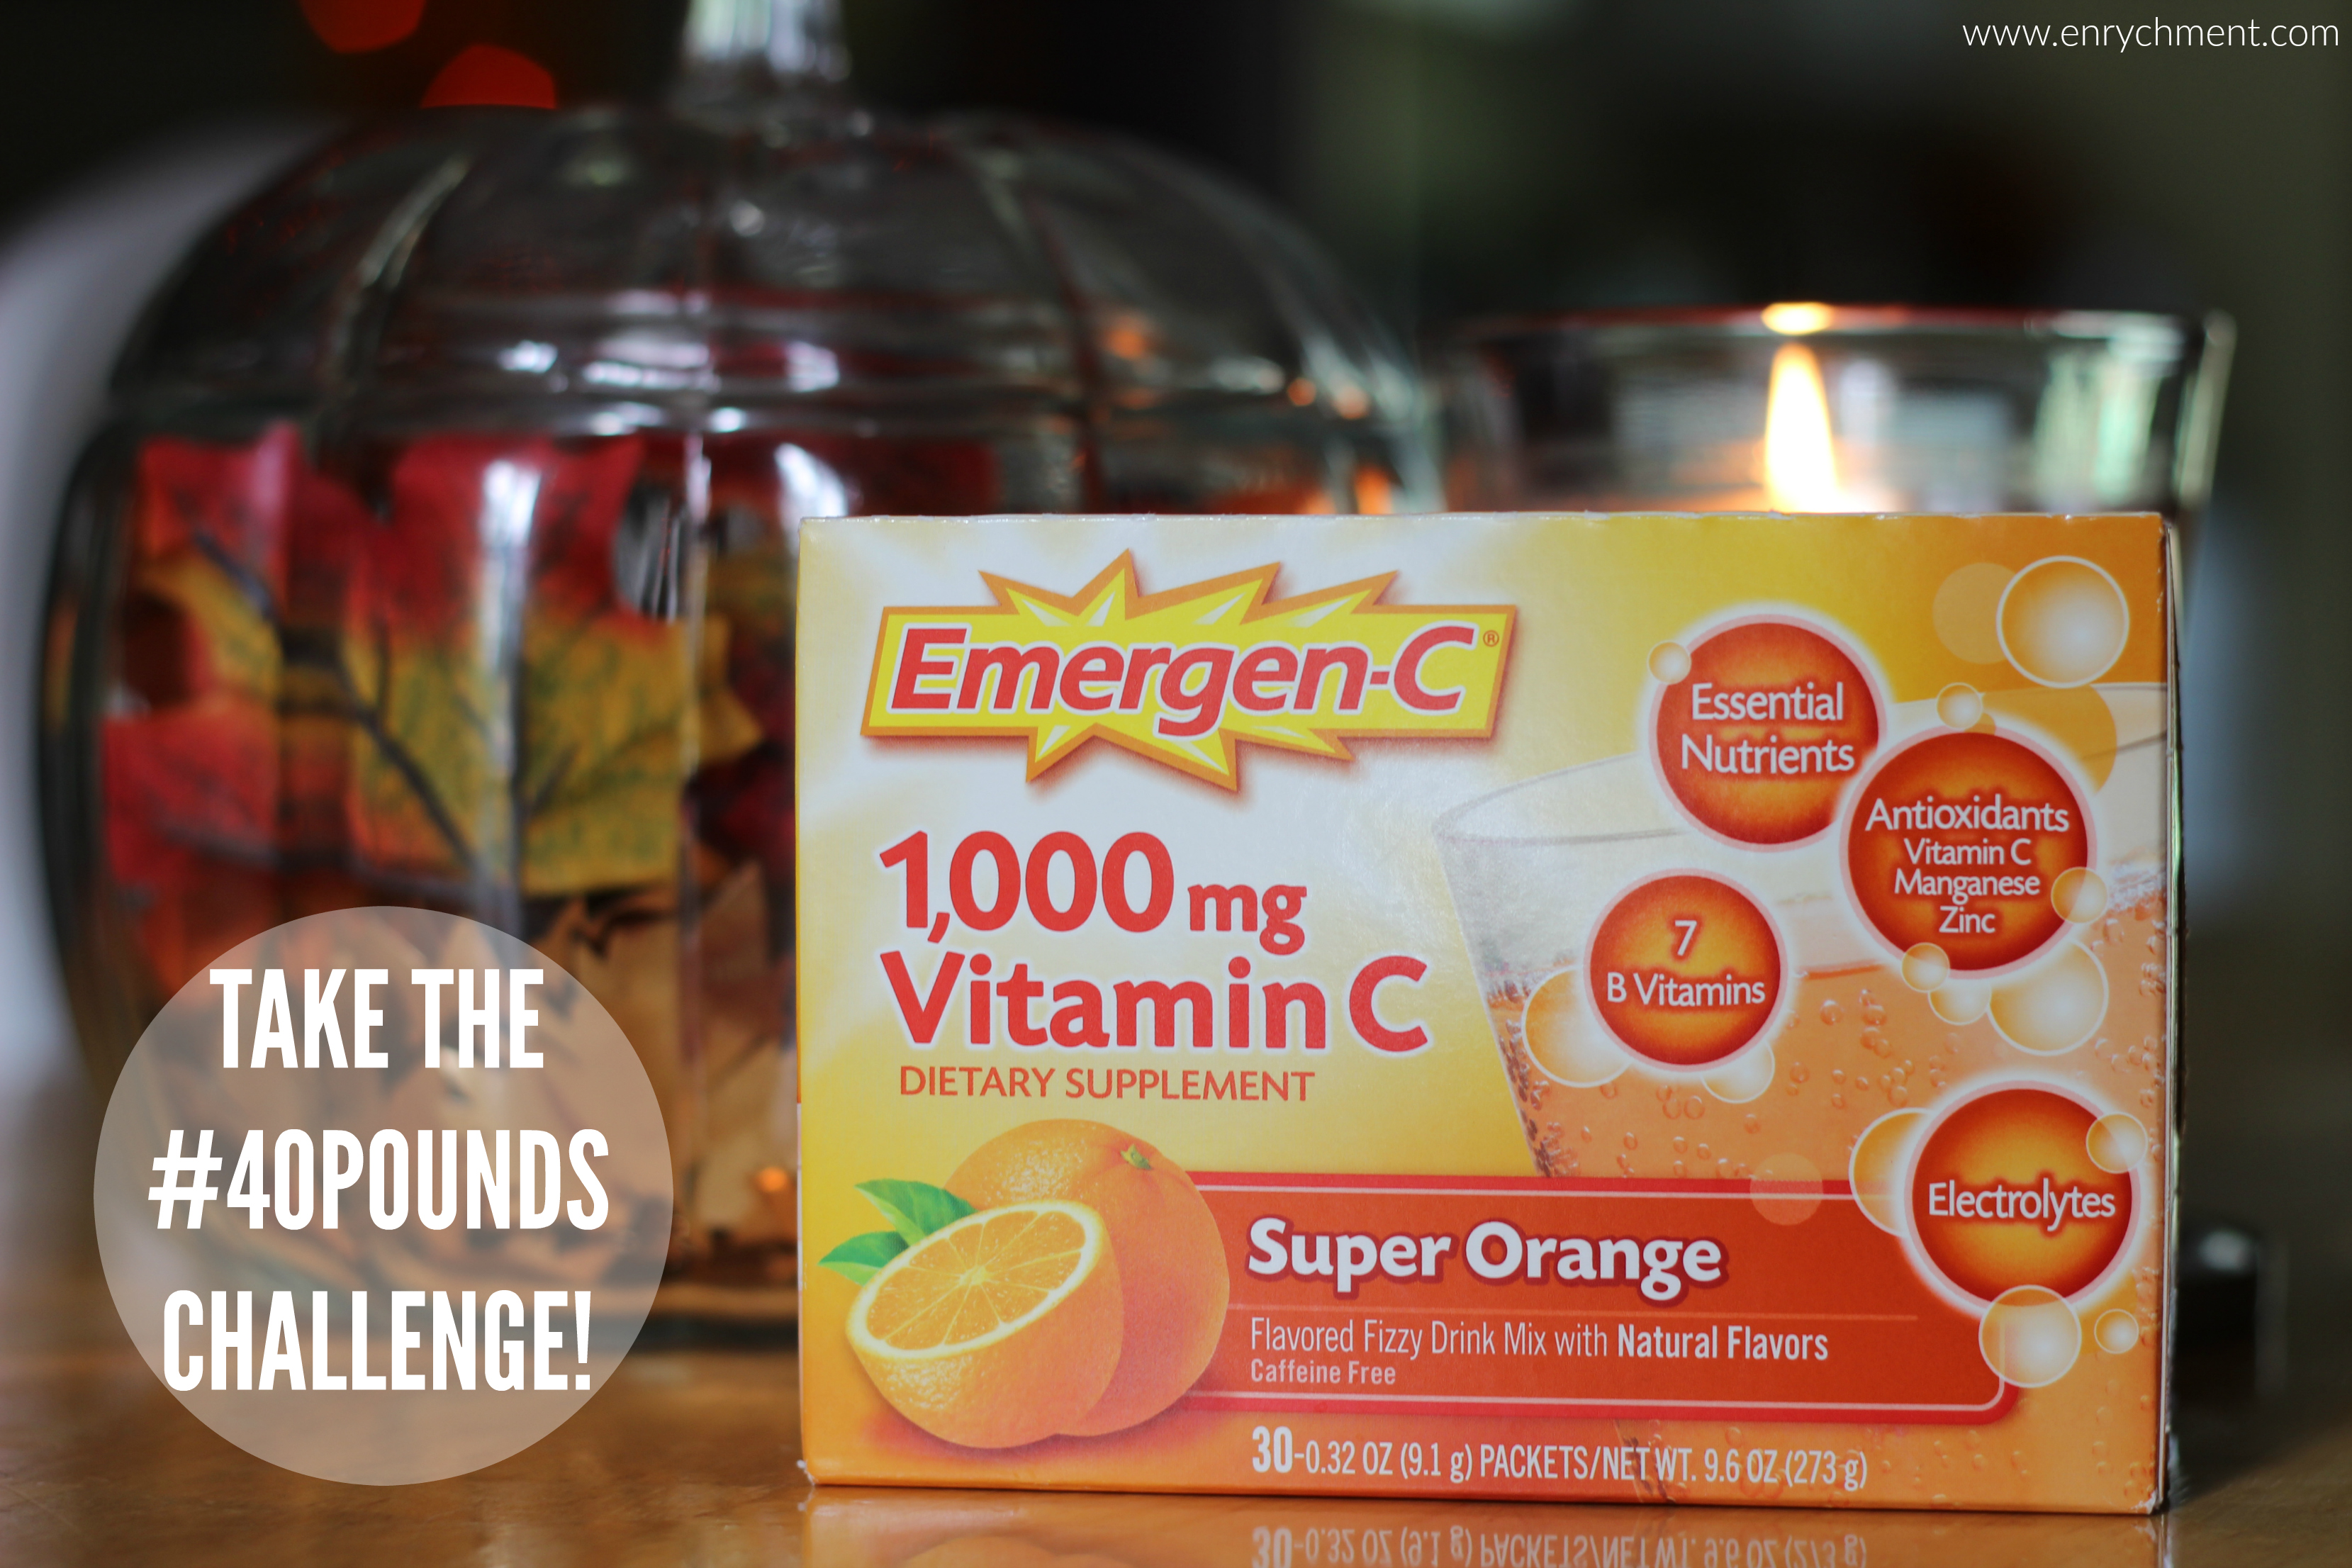 Take the #40pounds challenge with Emergen-C